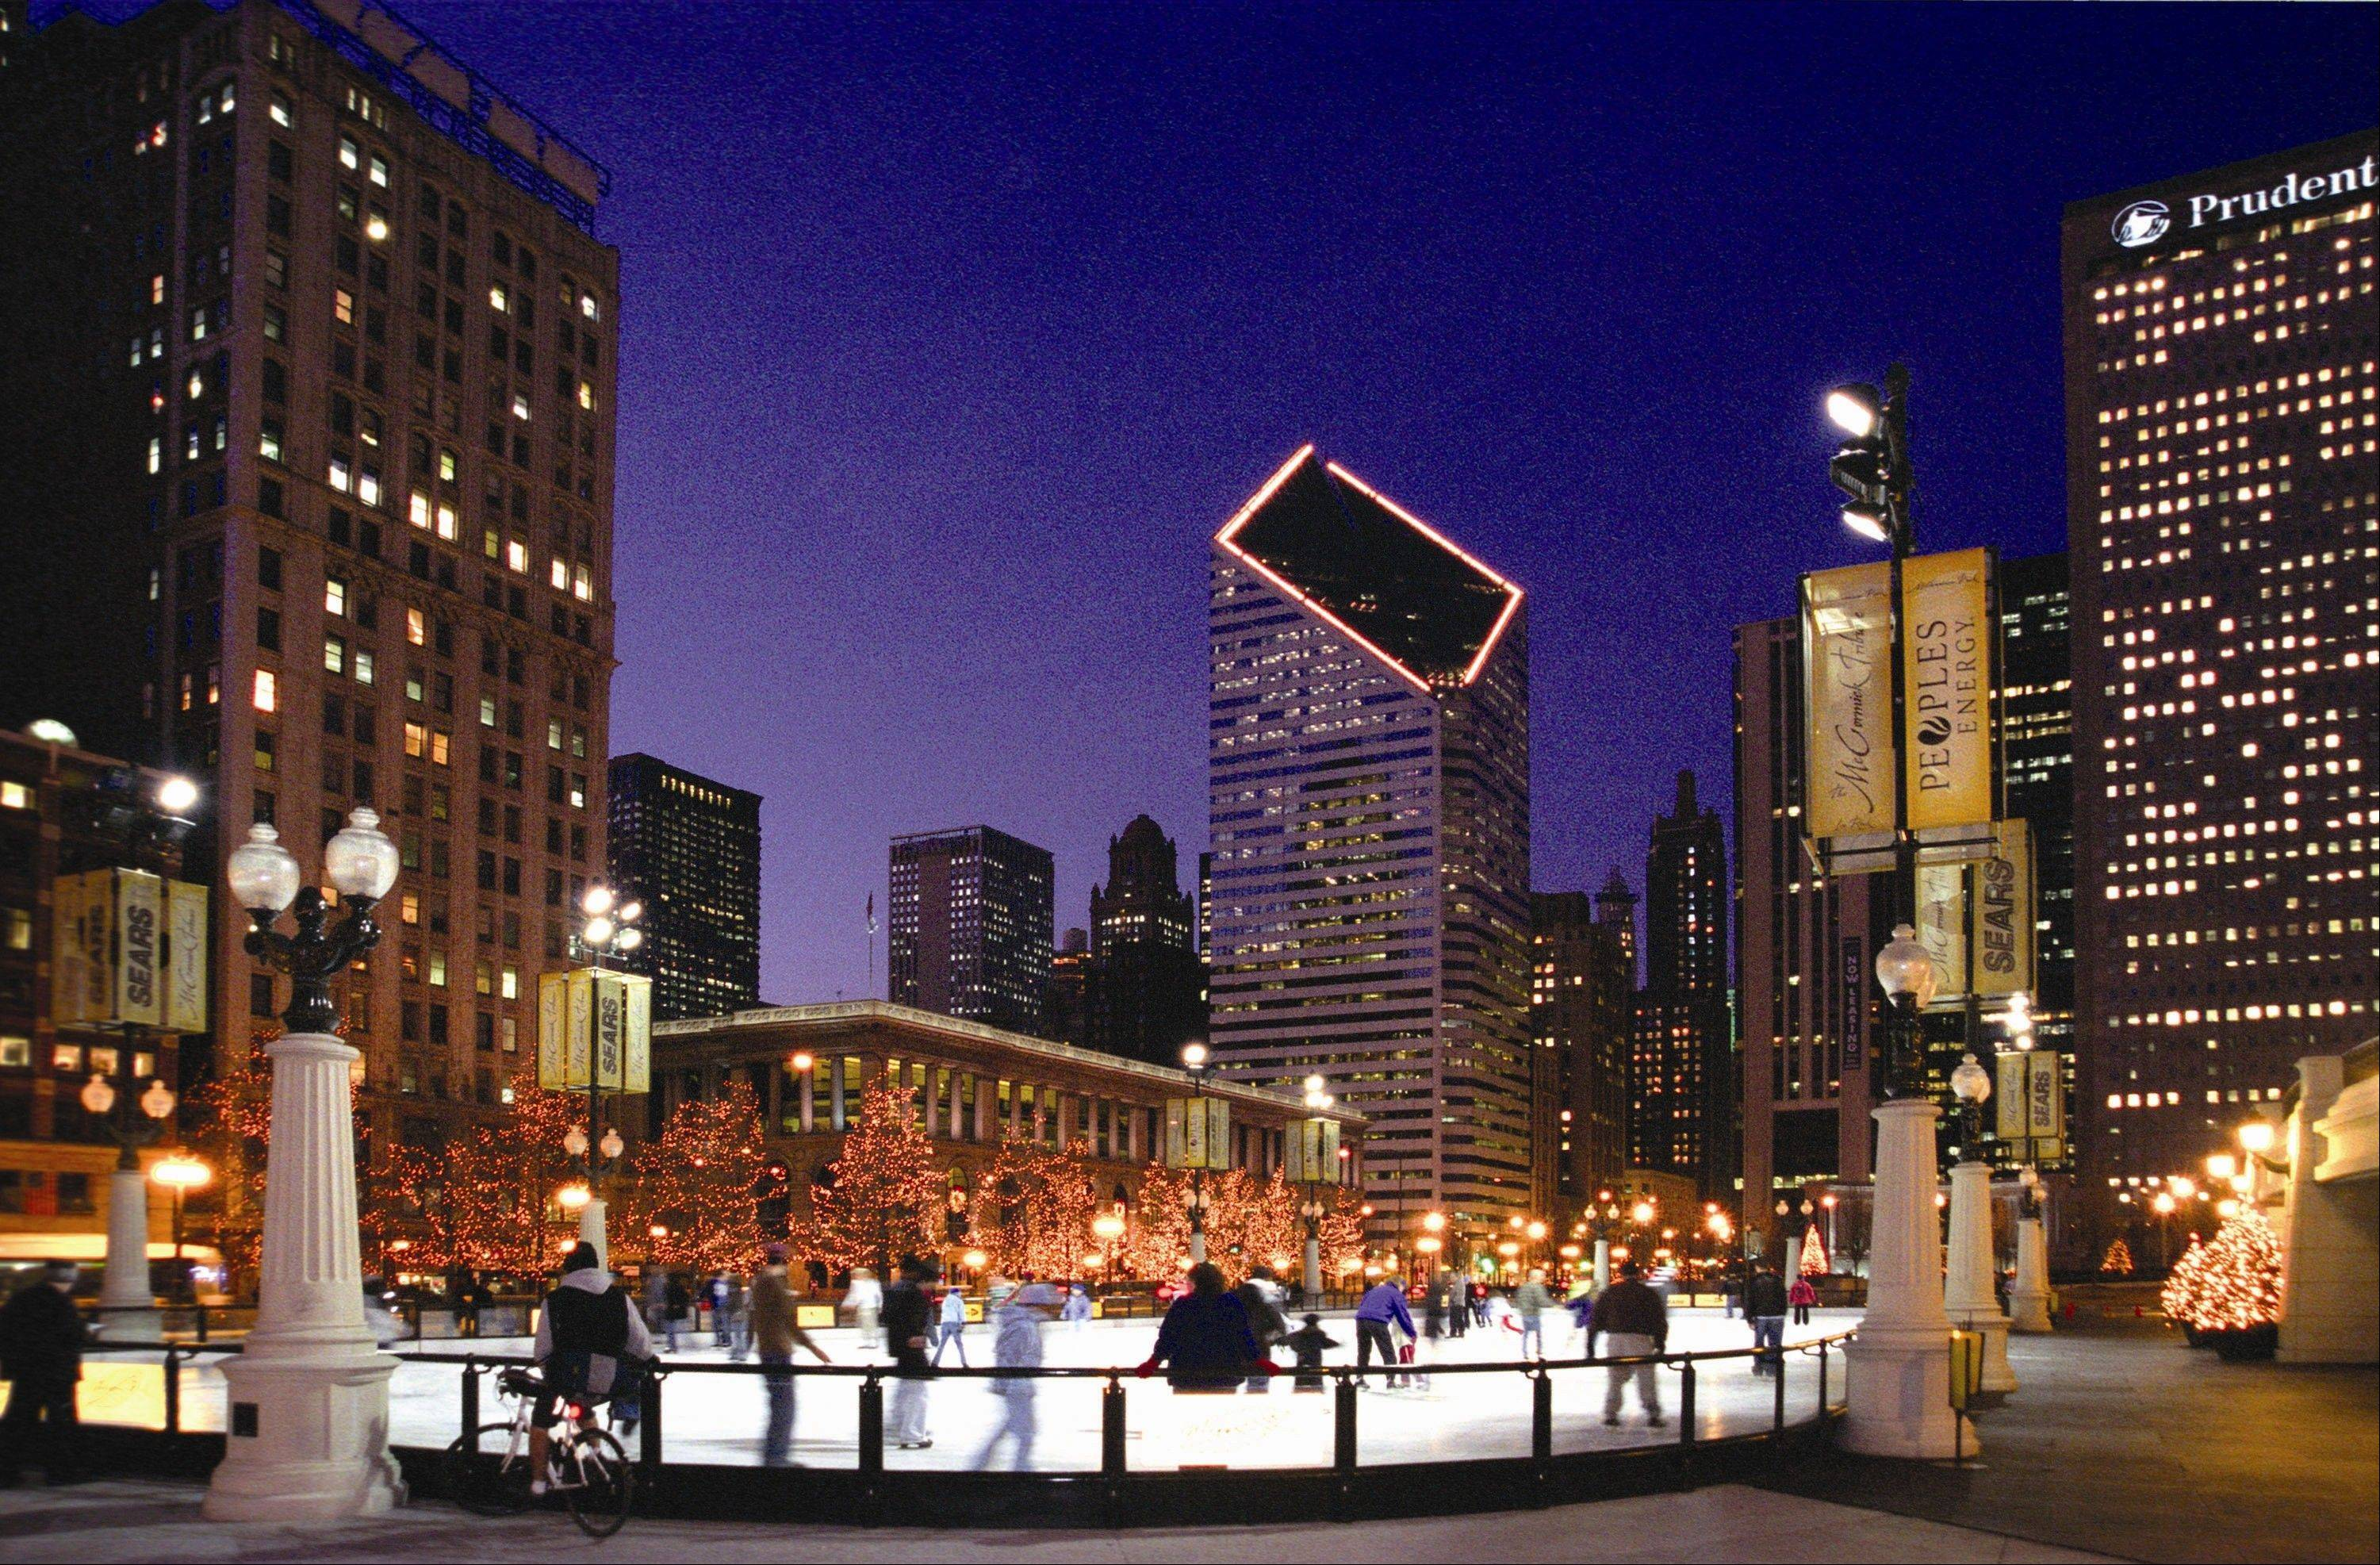 The view of Chicago's skyline is a big plus at Millennium Park's rink.